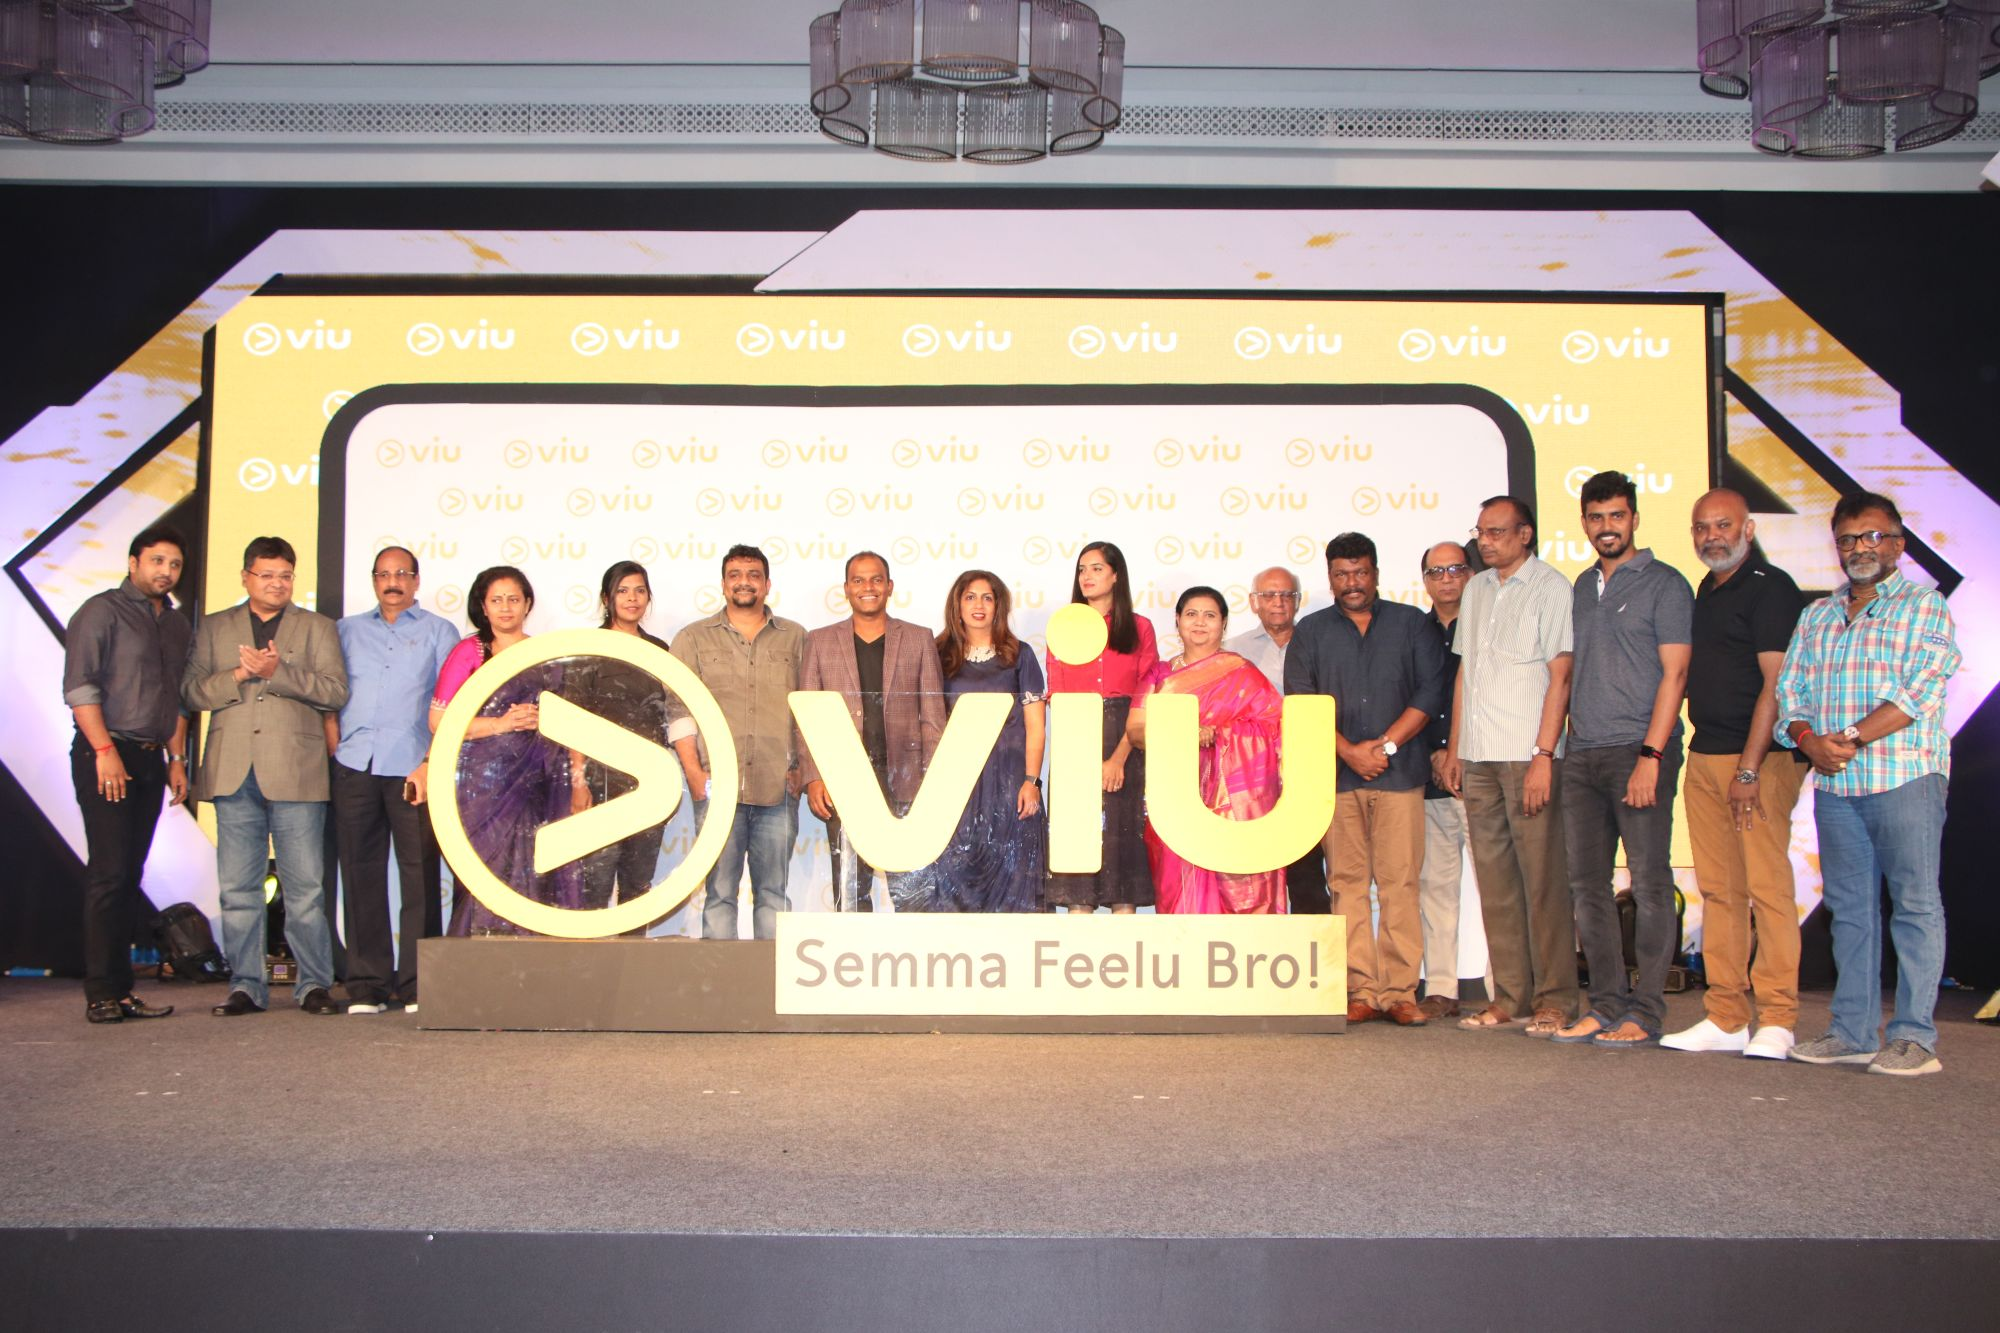 OTT Video service VIU launched in Tamil Nadu